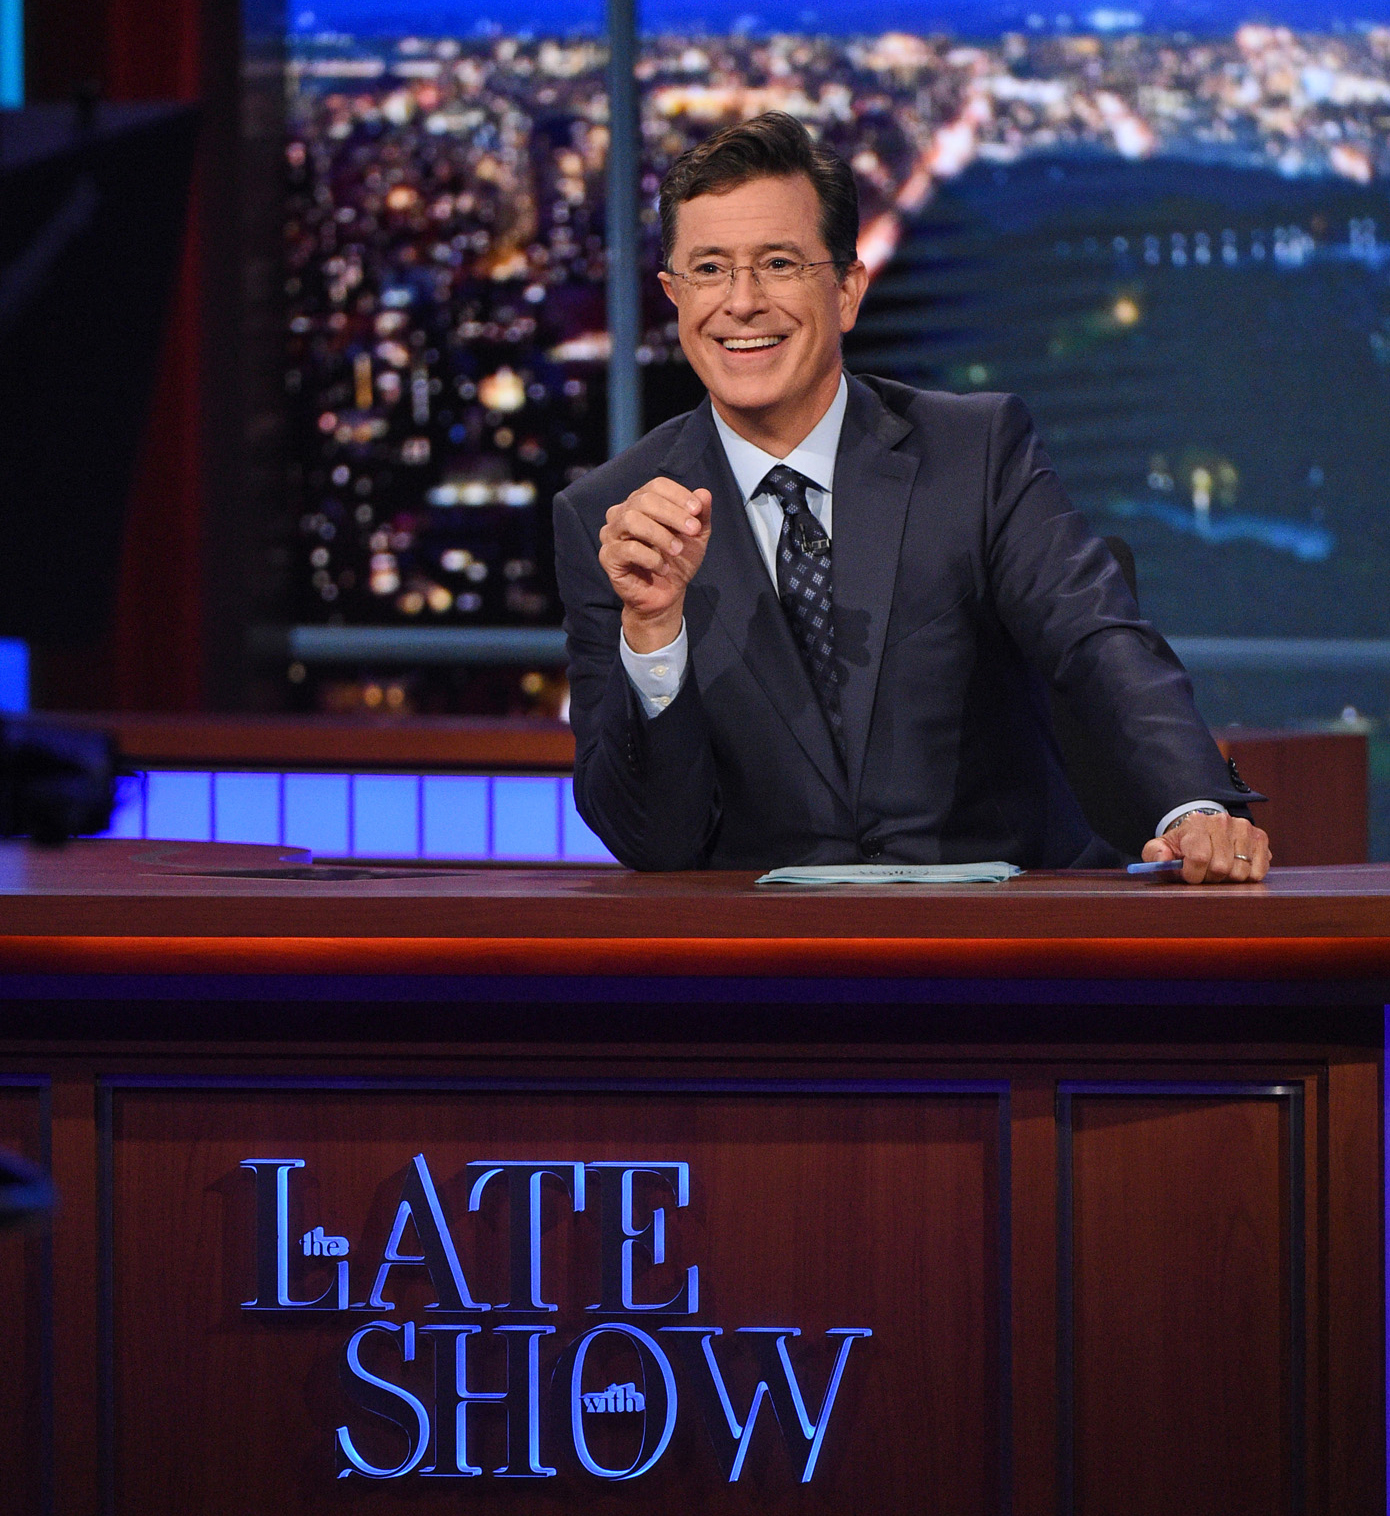 The Late Show with Stephen Colbert: Same Stephen, Double the Time